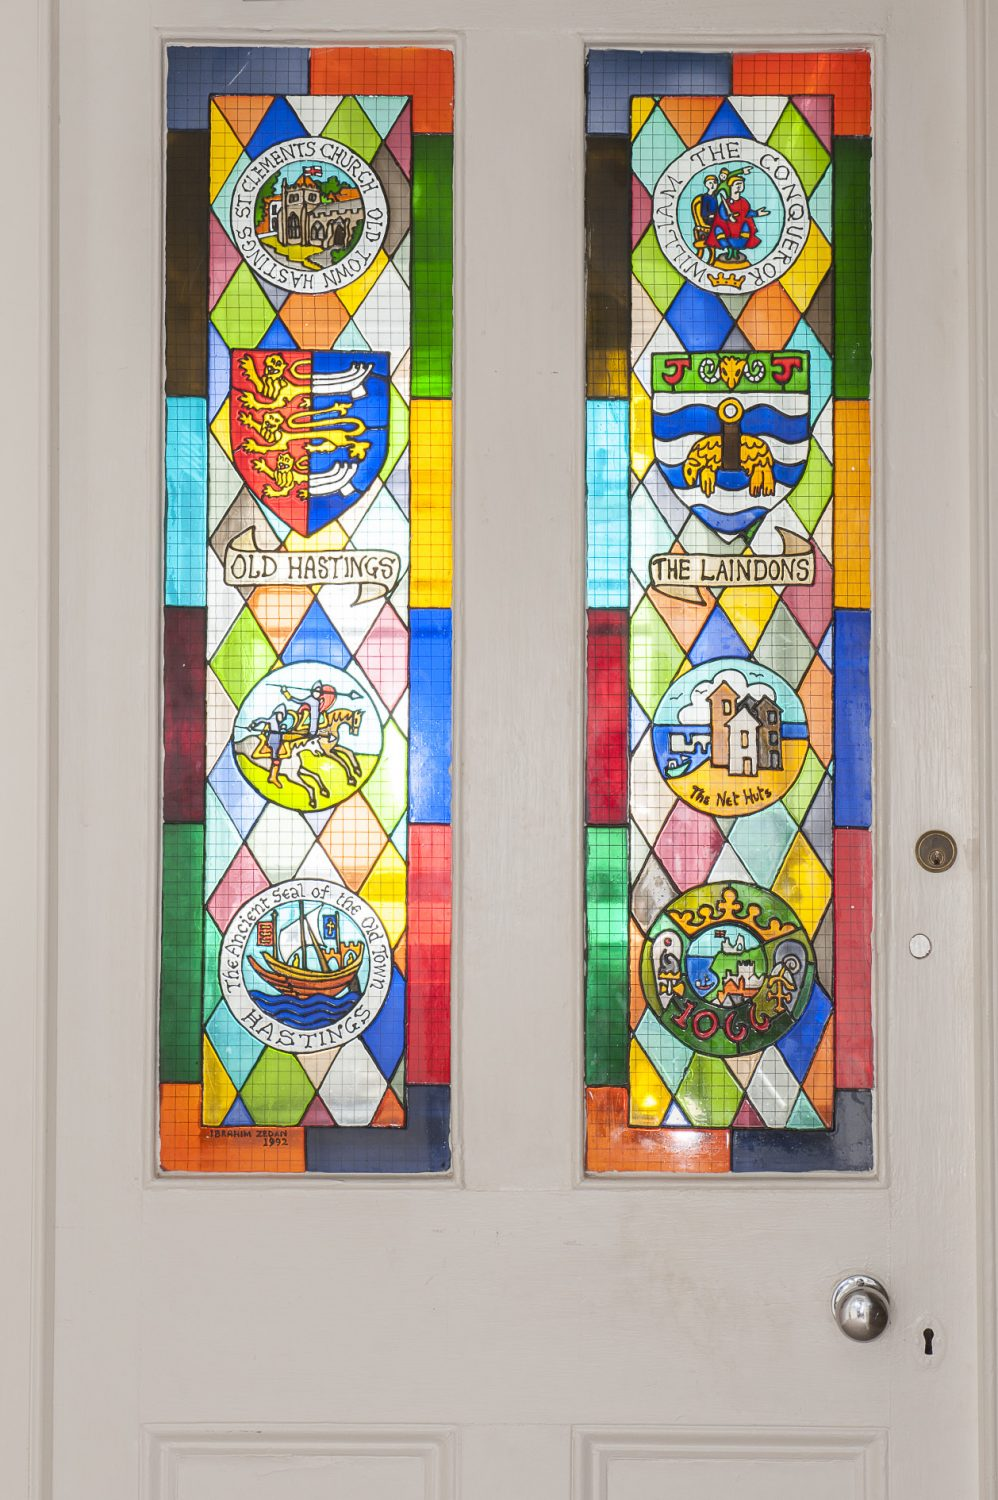 Personalised stained glass panels provide a powerful pop of colour in the corridor that separates the bedrooms from the drawing room and dining area